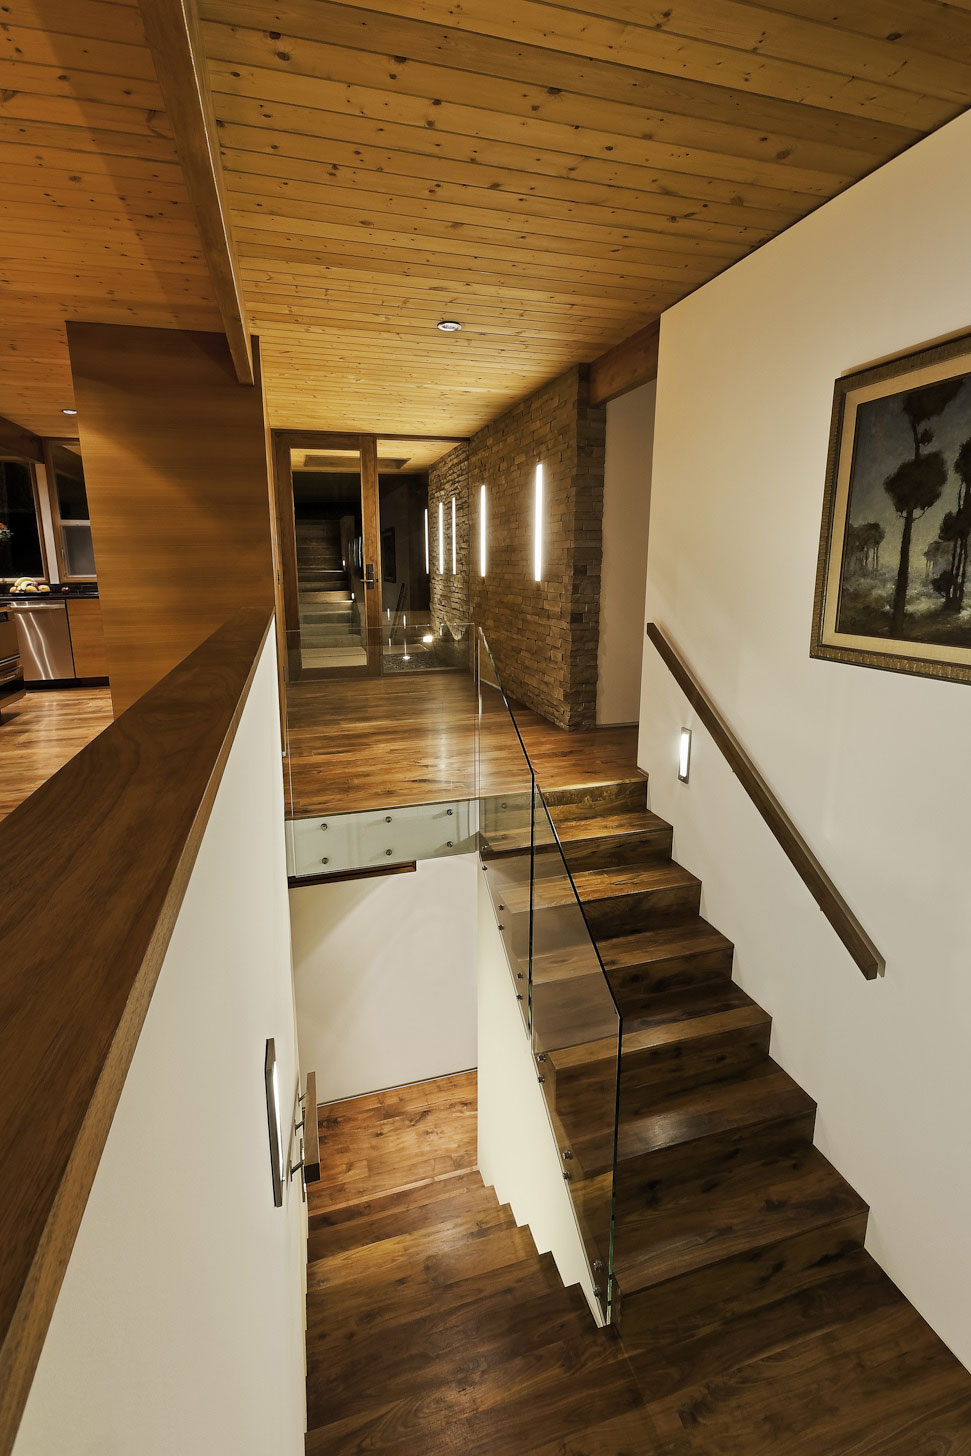 Wooden & Glass Stairs, Mid-Century Modern Home in Santa Barbara, California